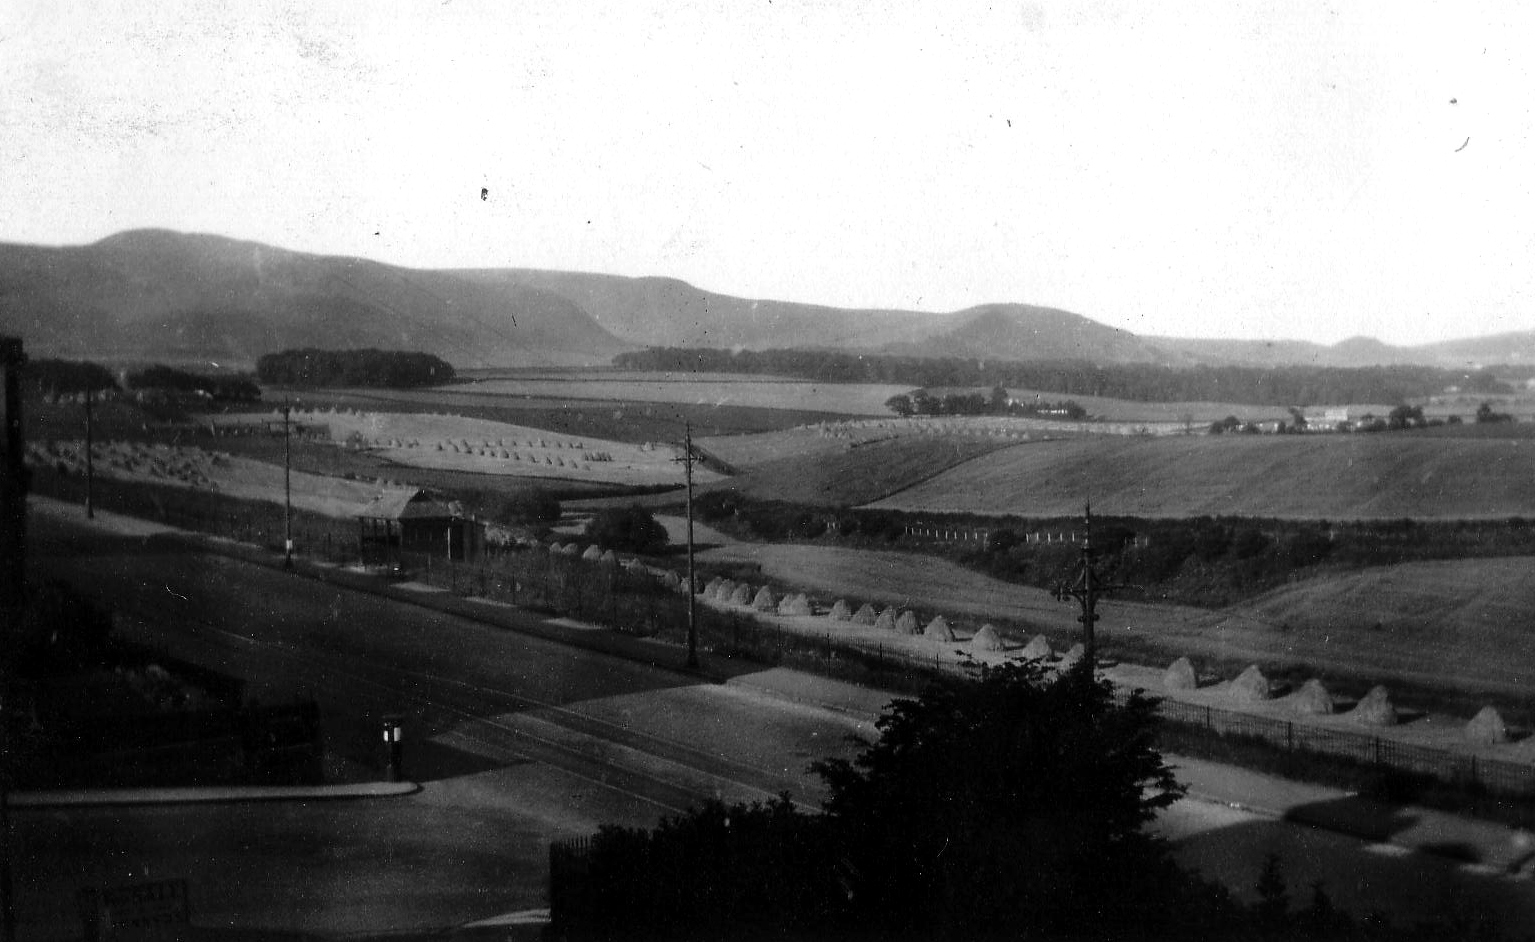 Comiston Road As Seen From 11 Pentland Terrace Looking South-West c.1934